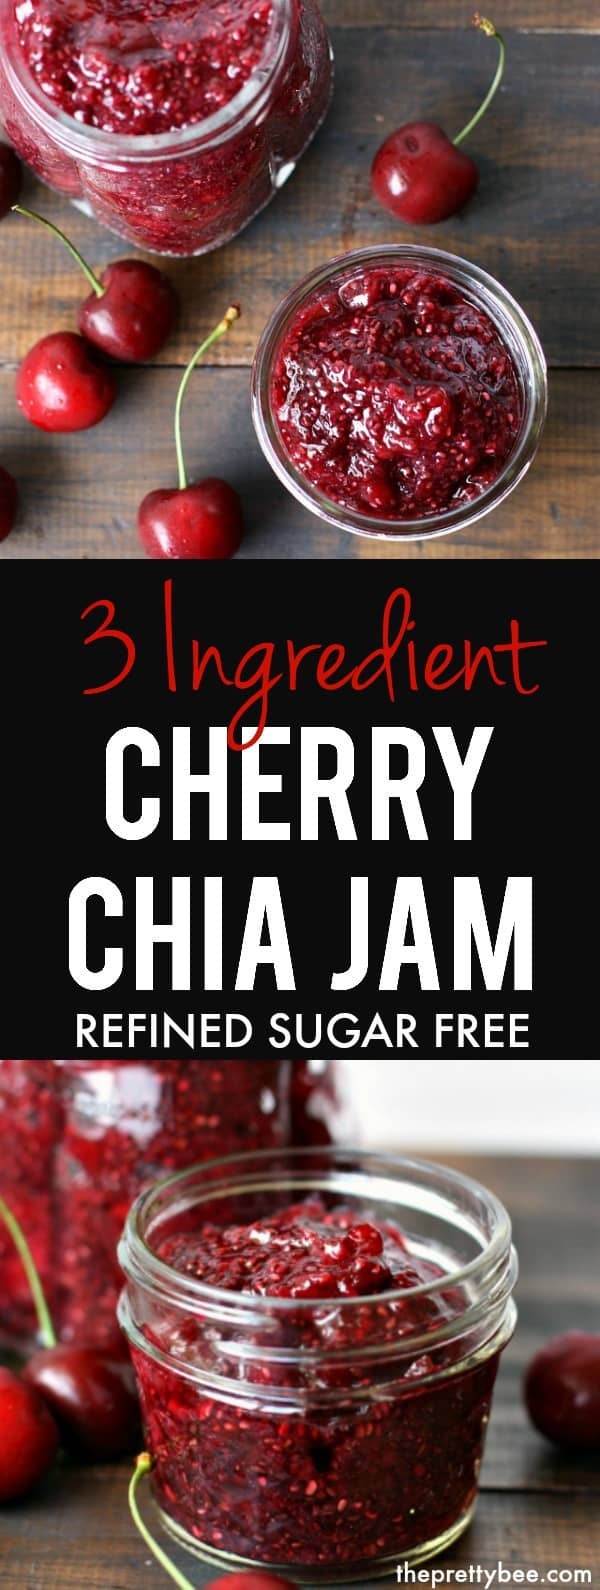 Make this 3 ingredient cherry chia jam - it's delicious on toast or bagels! So easy to make, no canning required! #vegan #glutenfree #dairyfree #grainfree